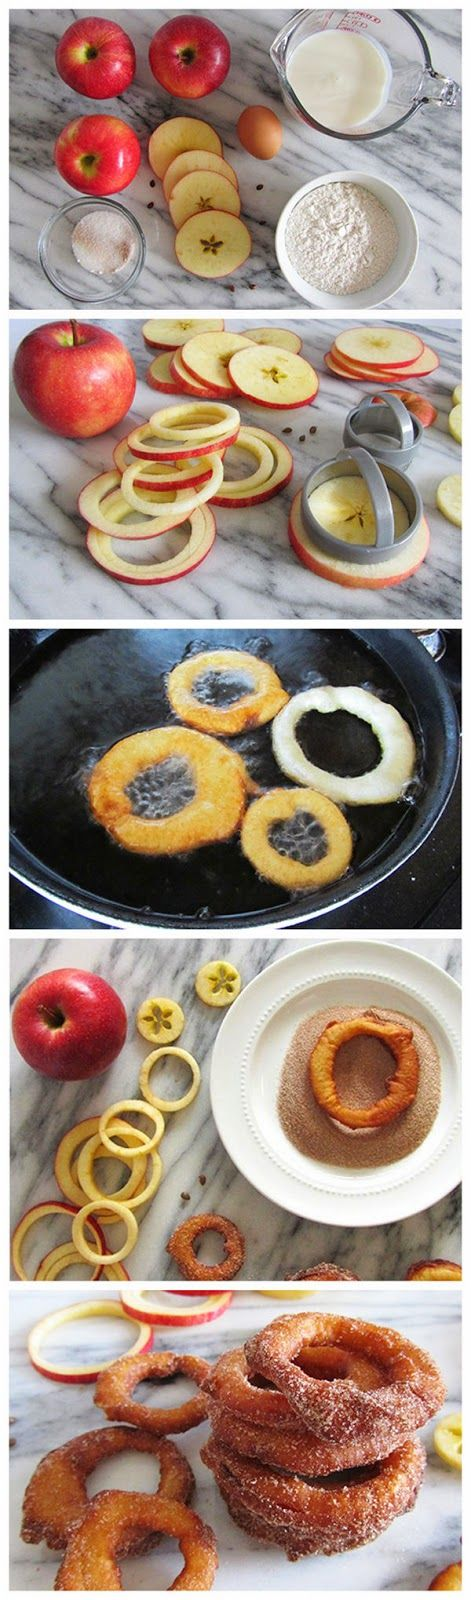 cinnamon apple rings.  Use gluten free flour, flax egg, and full fat coconut milk to make it #vegan and #glutenfree